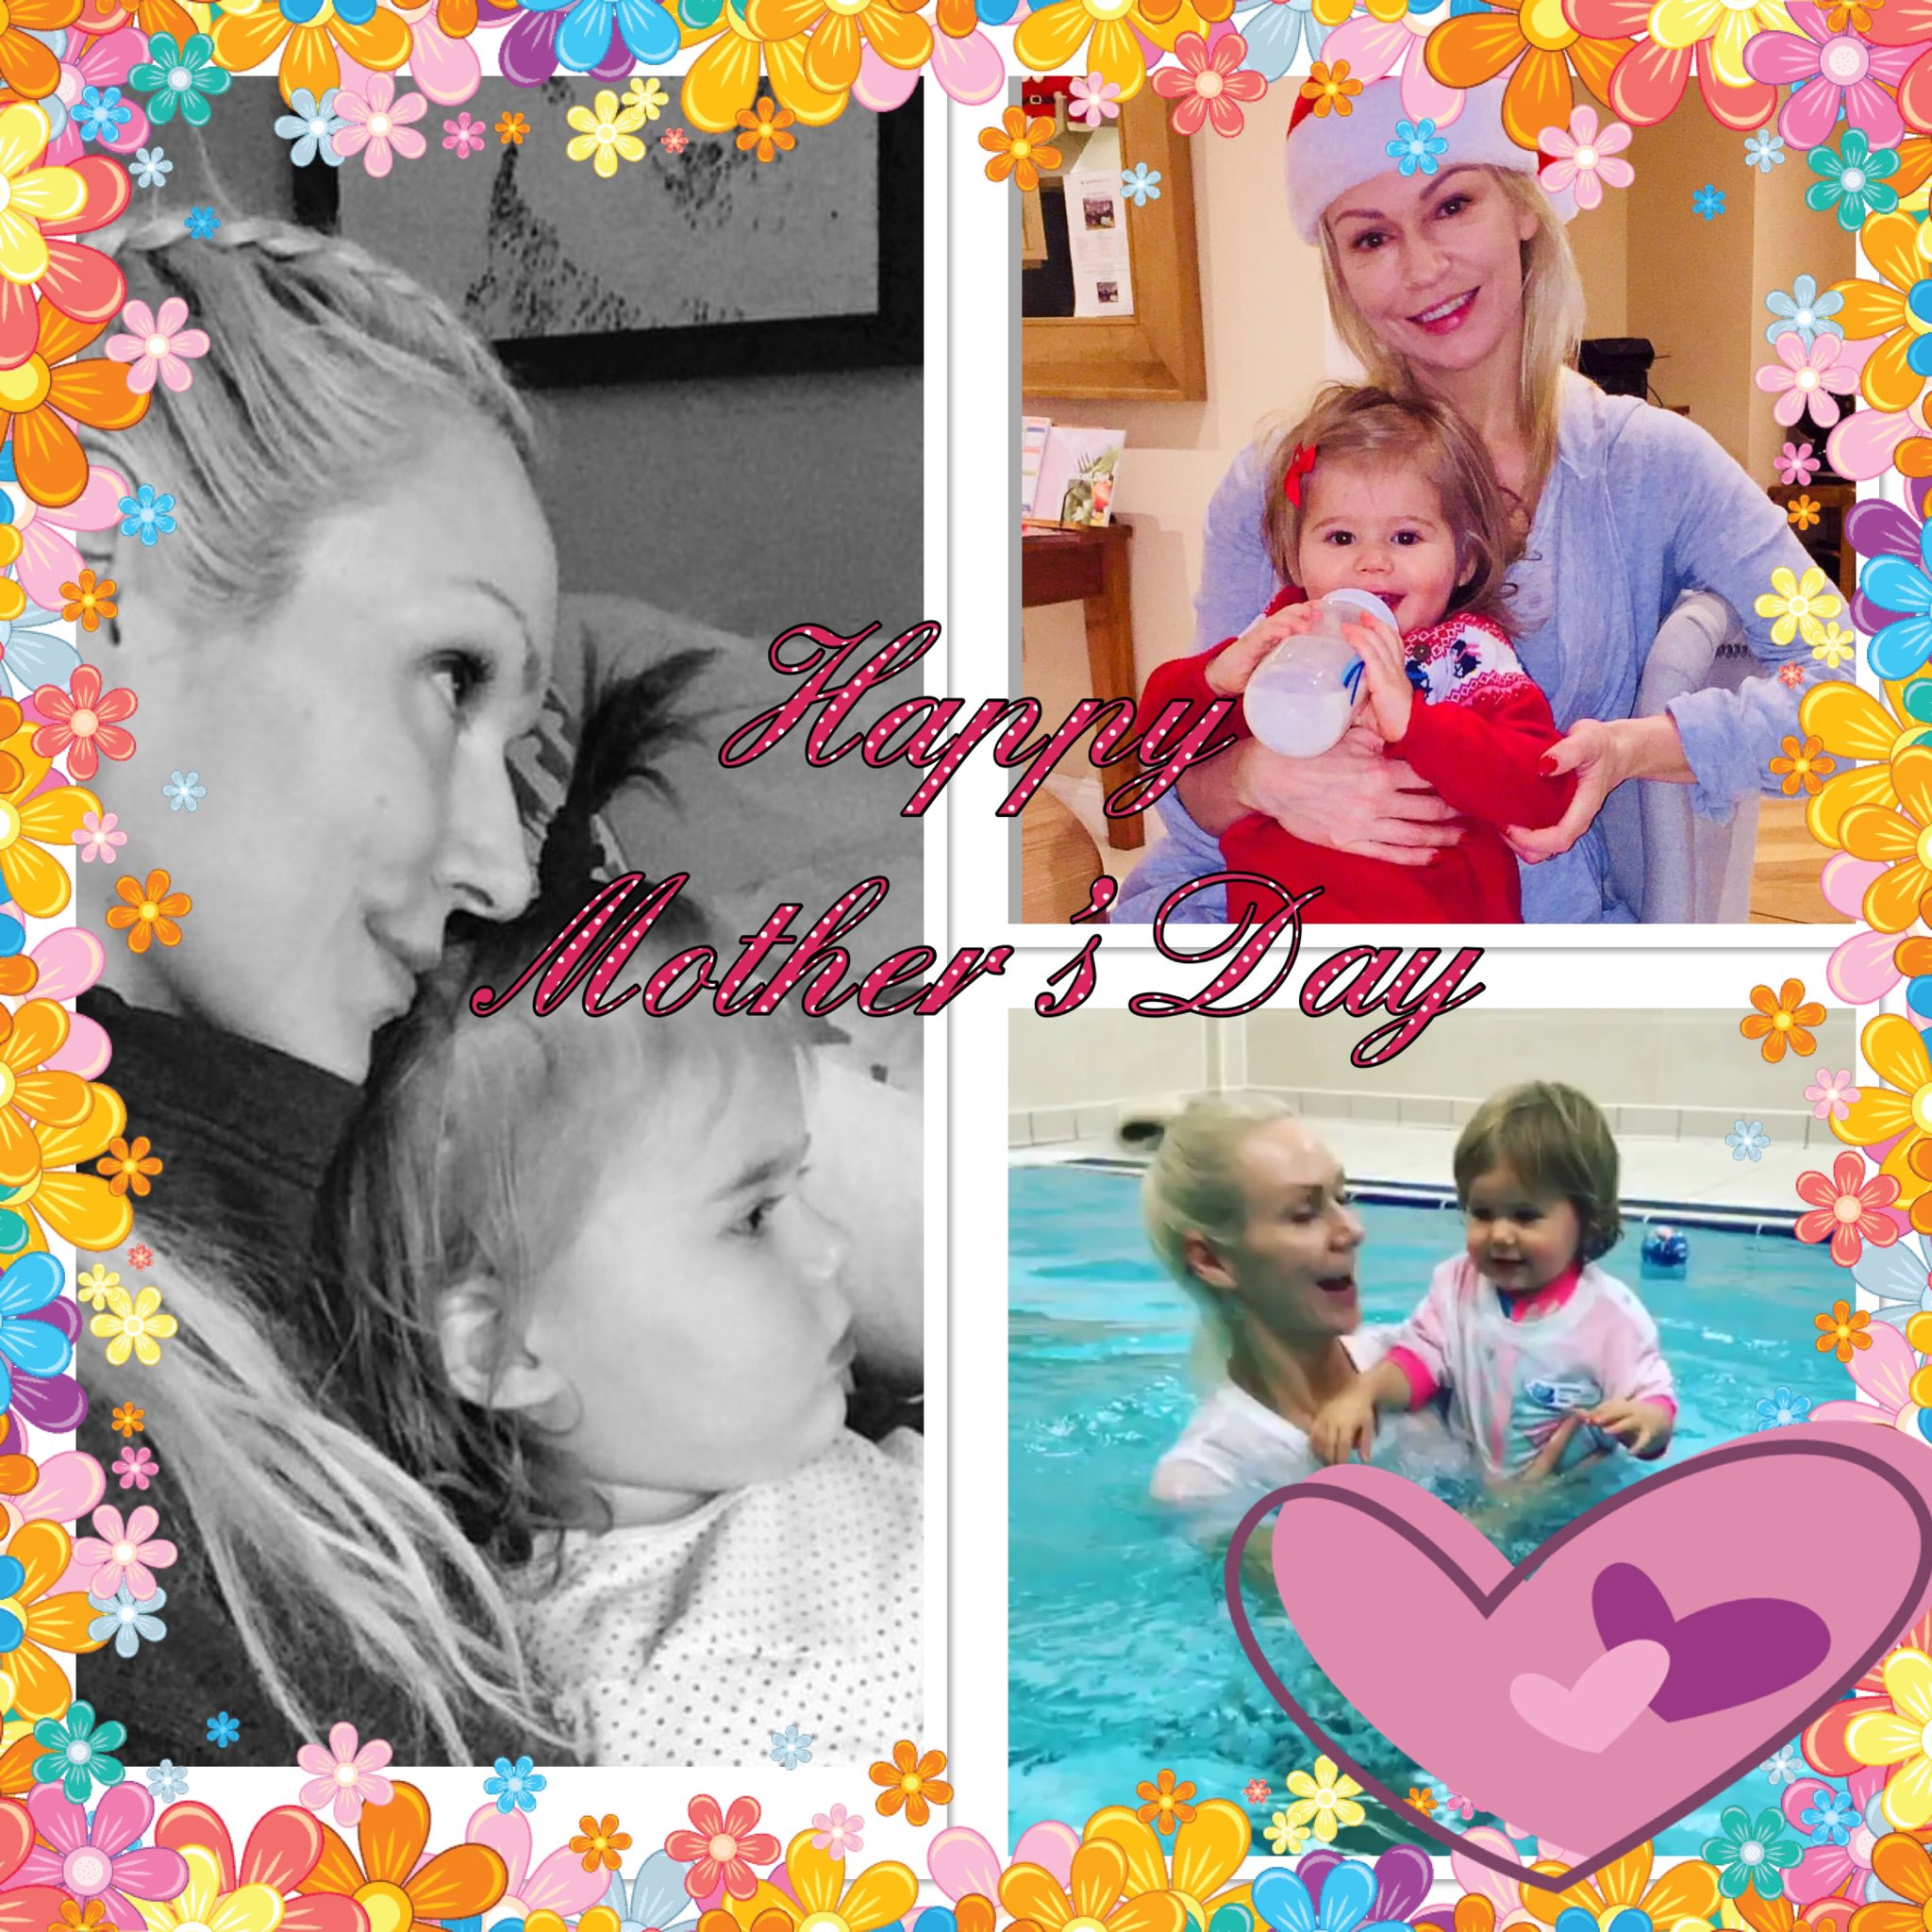 RT @TeamRihanoff: Happy Mother's Day @KRihanoff have a wonderful day 💓 https://t.co/z1f0ktxE23